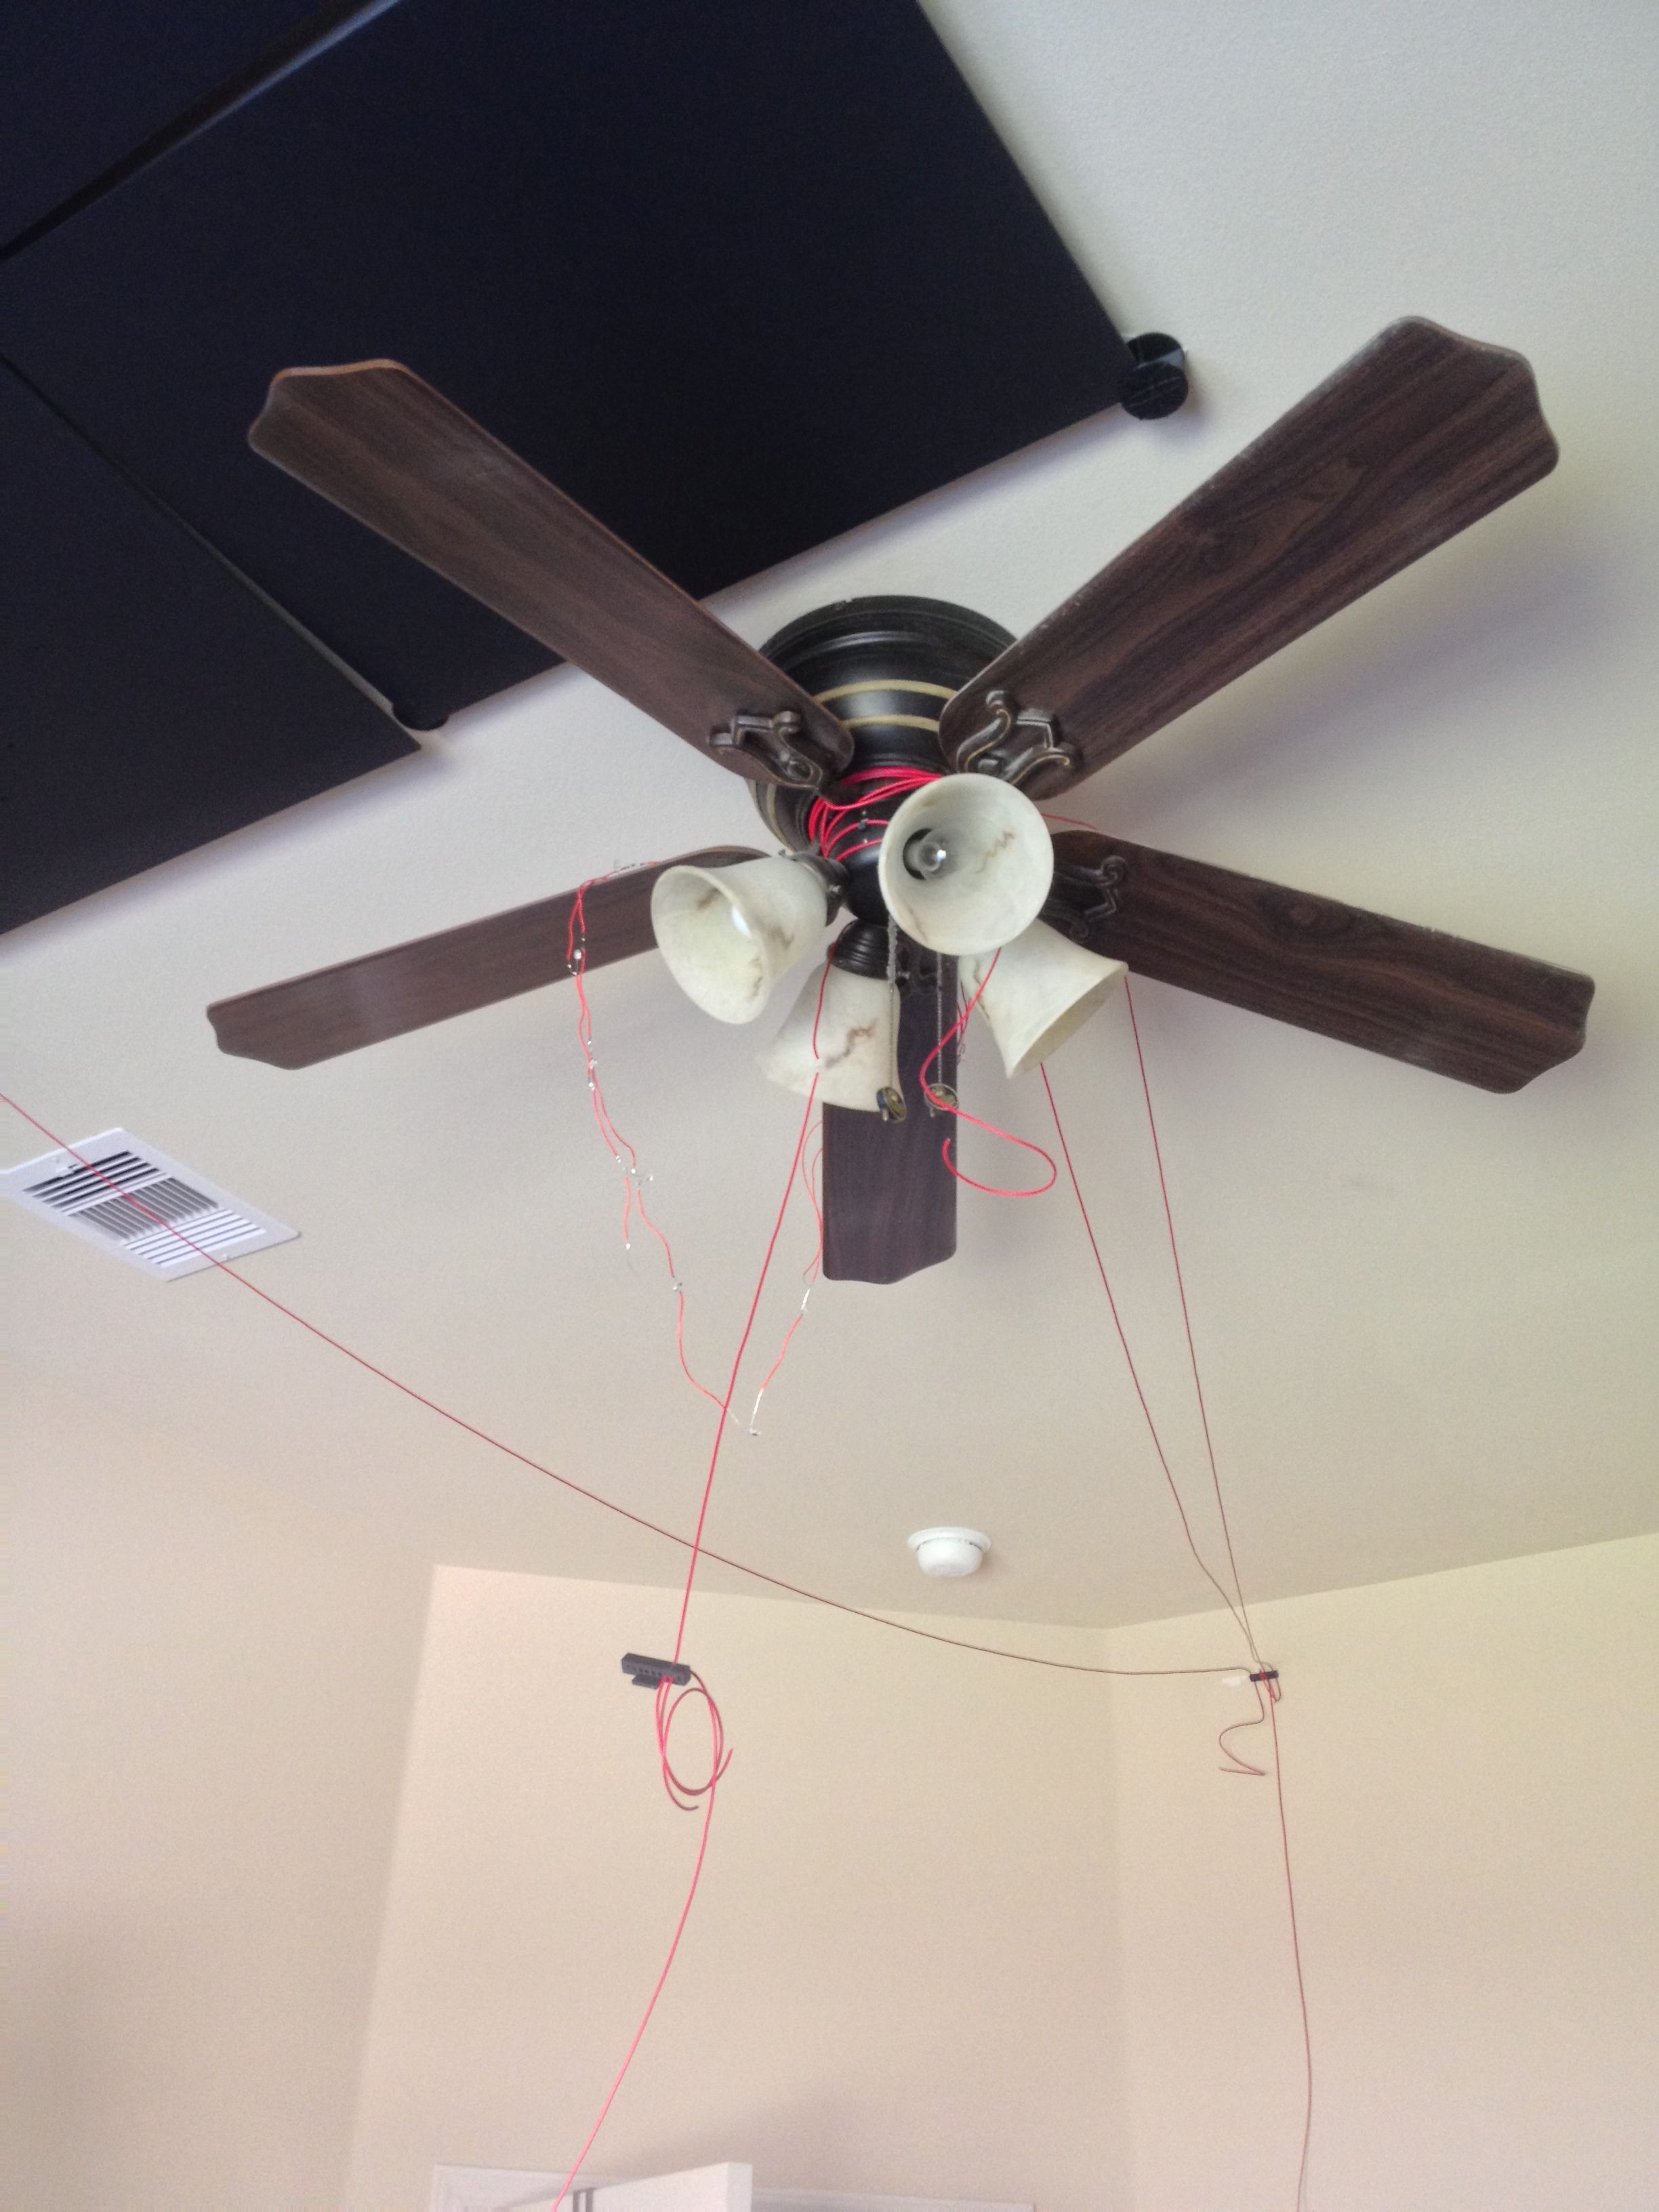 Picture of The Fan.....